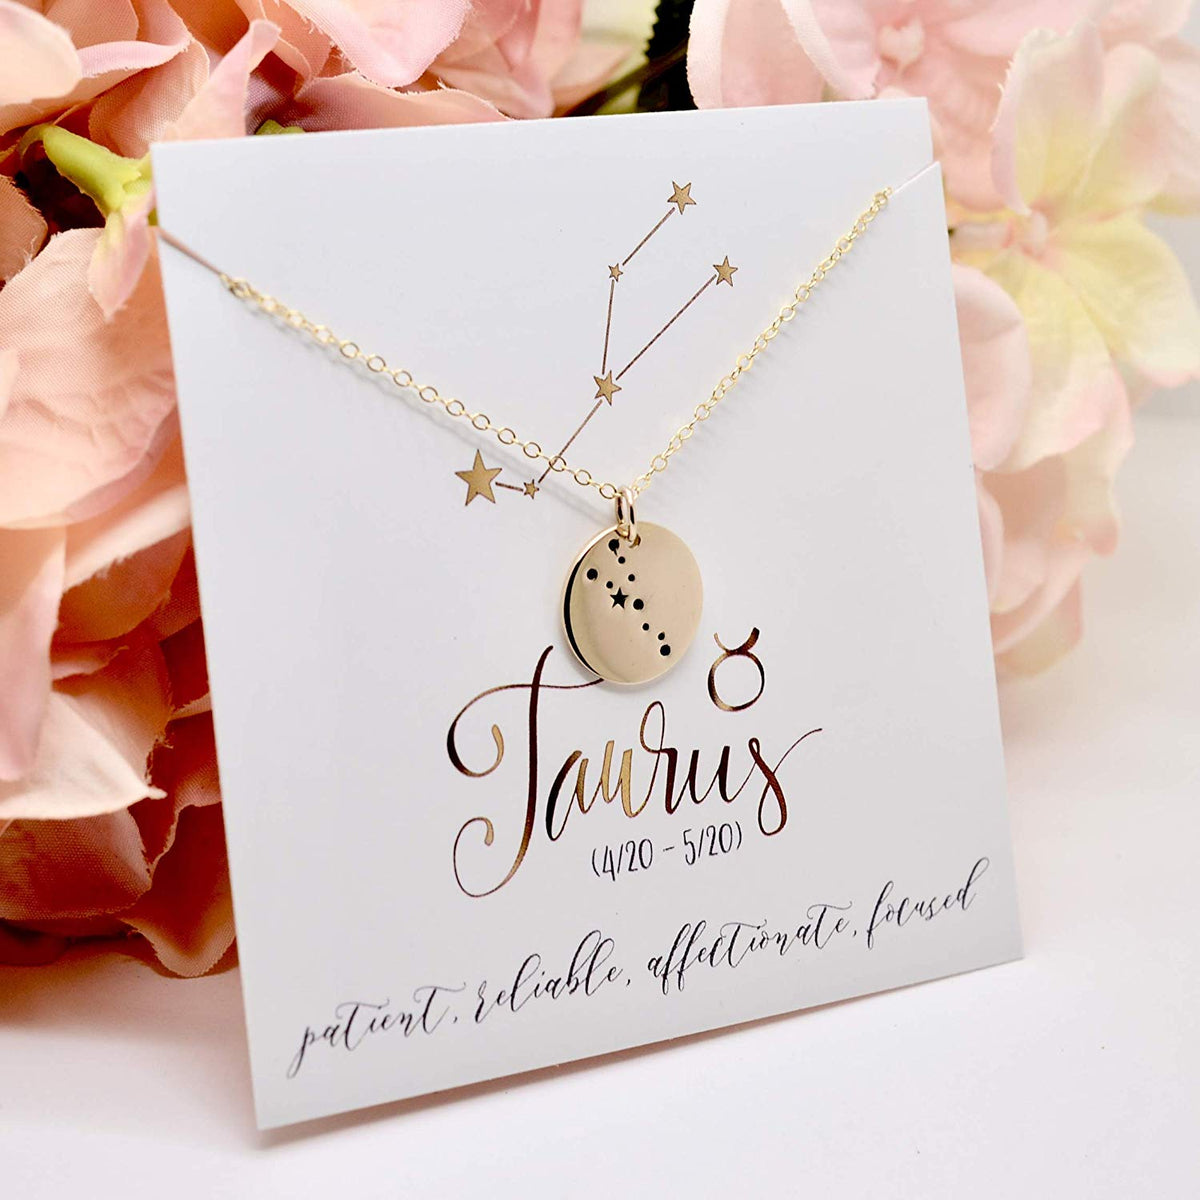 Taurus Zodiac Sign 14K Gold Filled Constellation Necklace - Love It Personalized